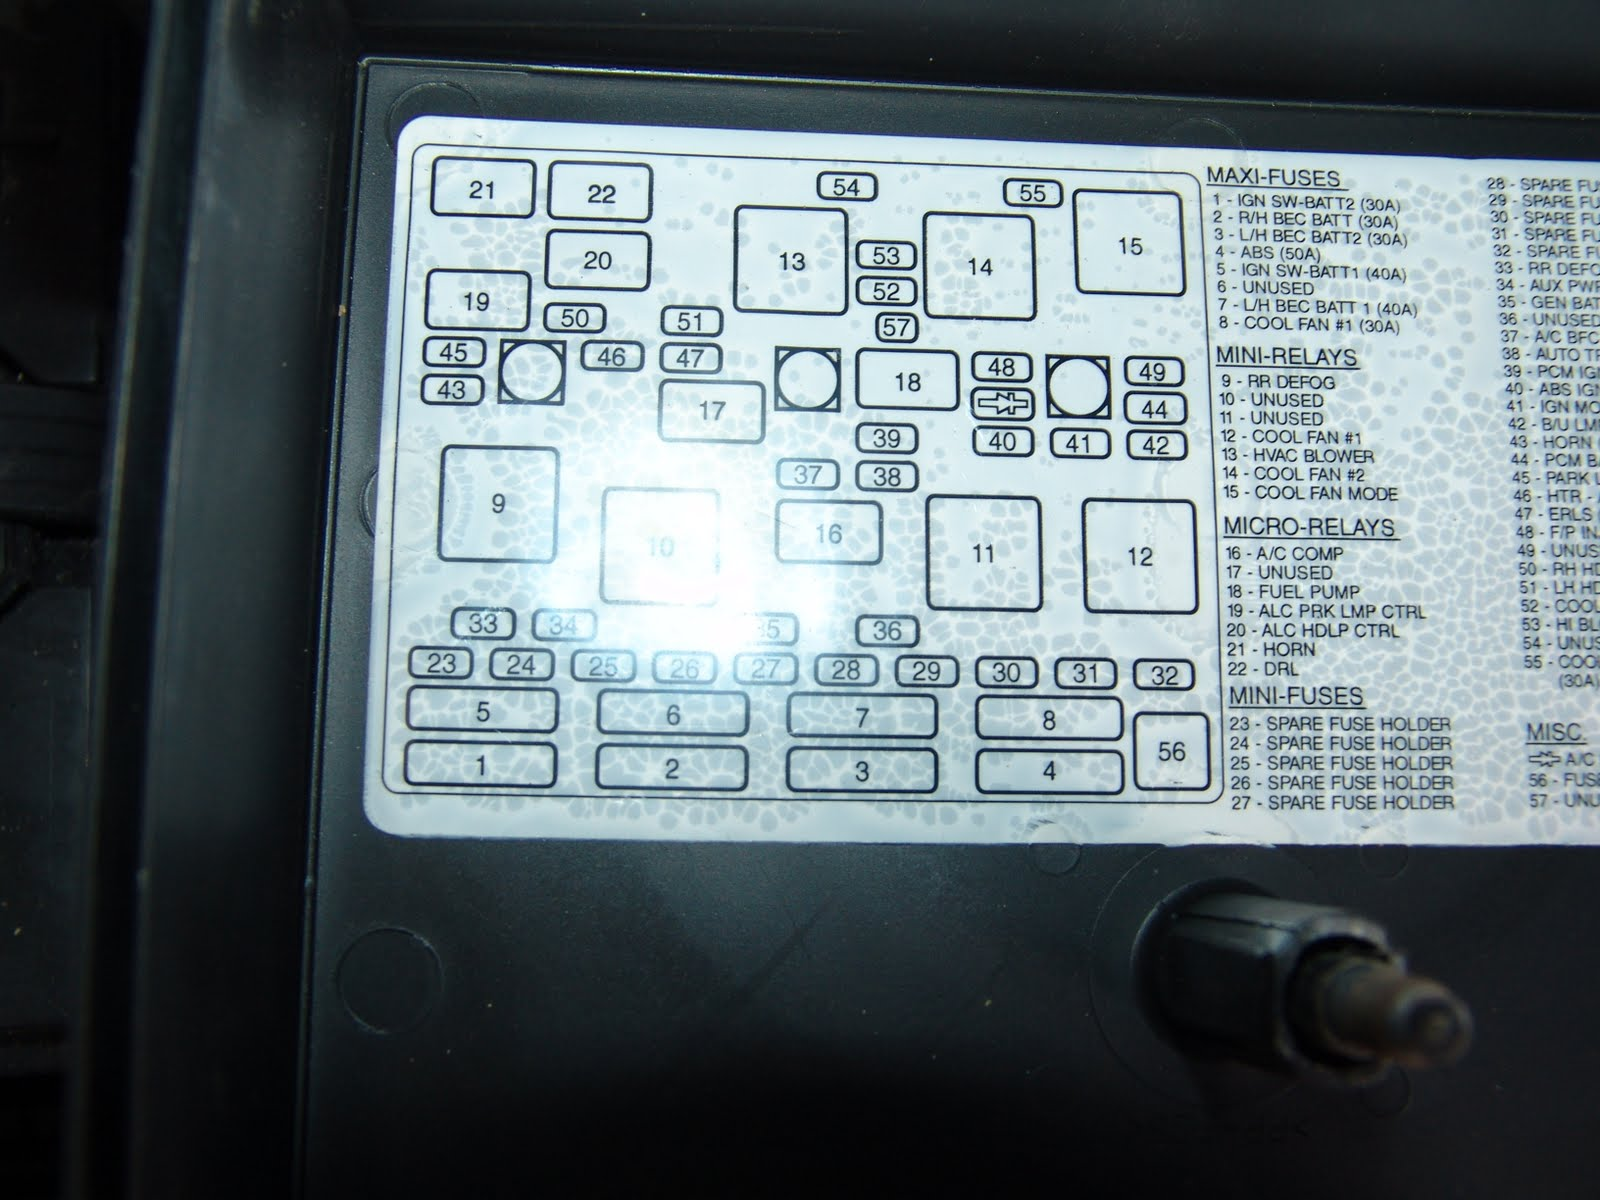 LyrHFl additionally Catalog3 additionally Ford Edge 2010 Junction Fuse Boxblock Circuit Breaker Diagram as well 09 Dodge Ram Fuse Box Diagram further 03 Ford Crown Victoria Fuse Box Diagram. on dodge fuse panel diagram